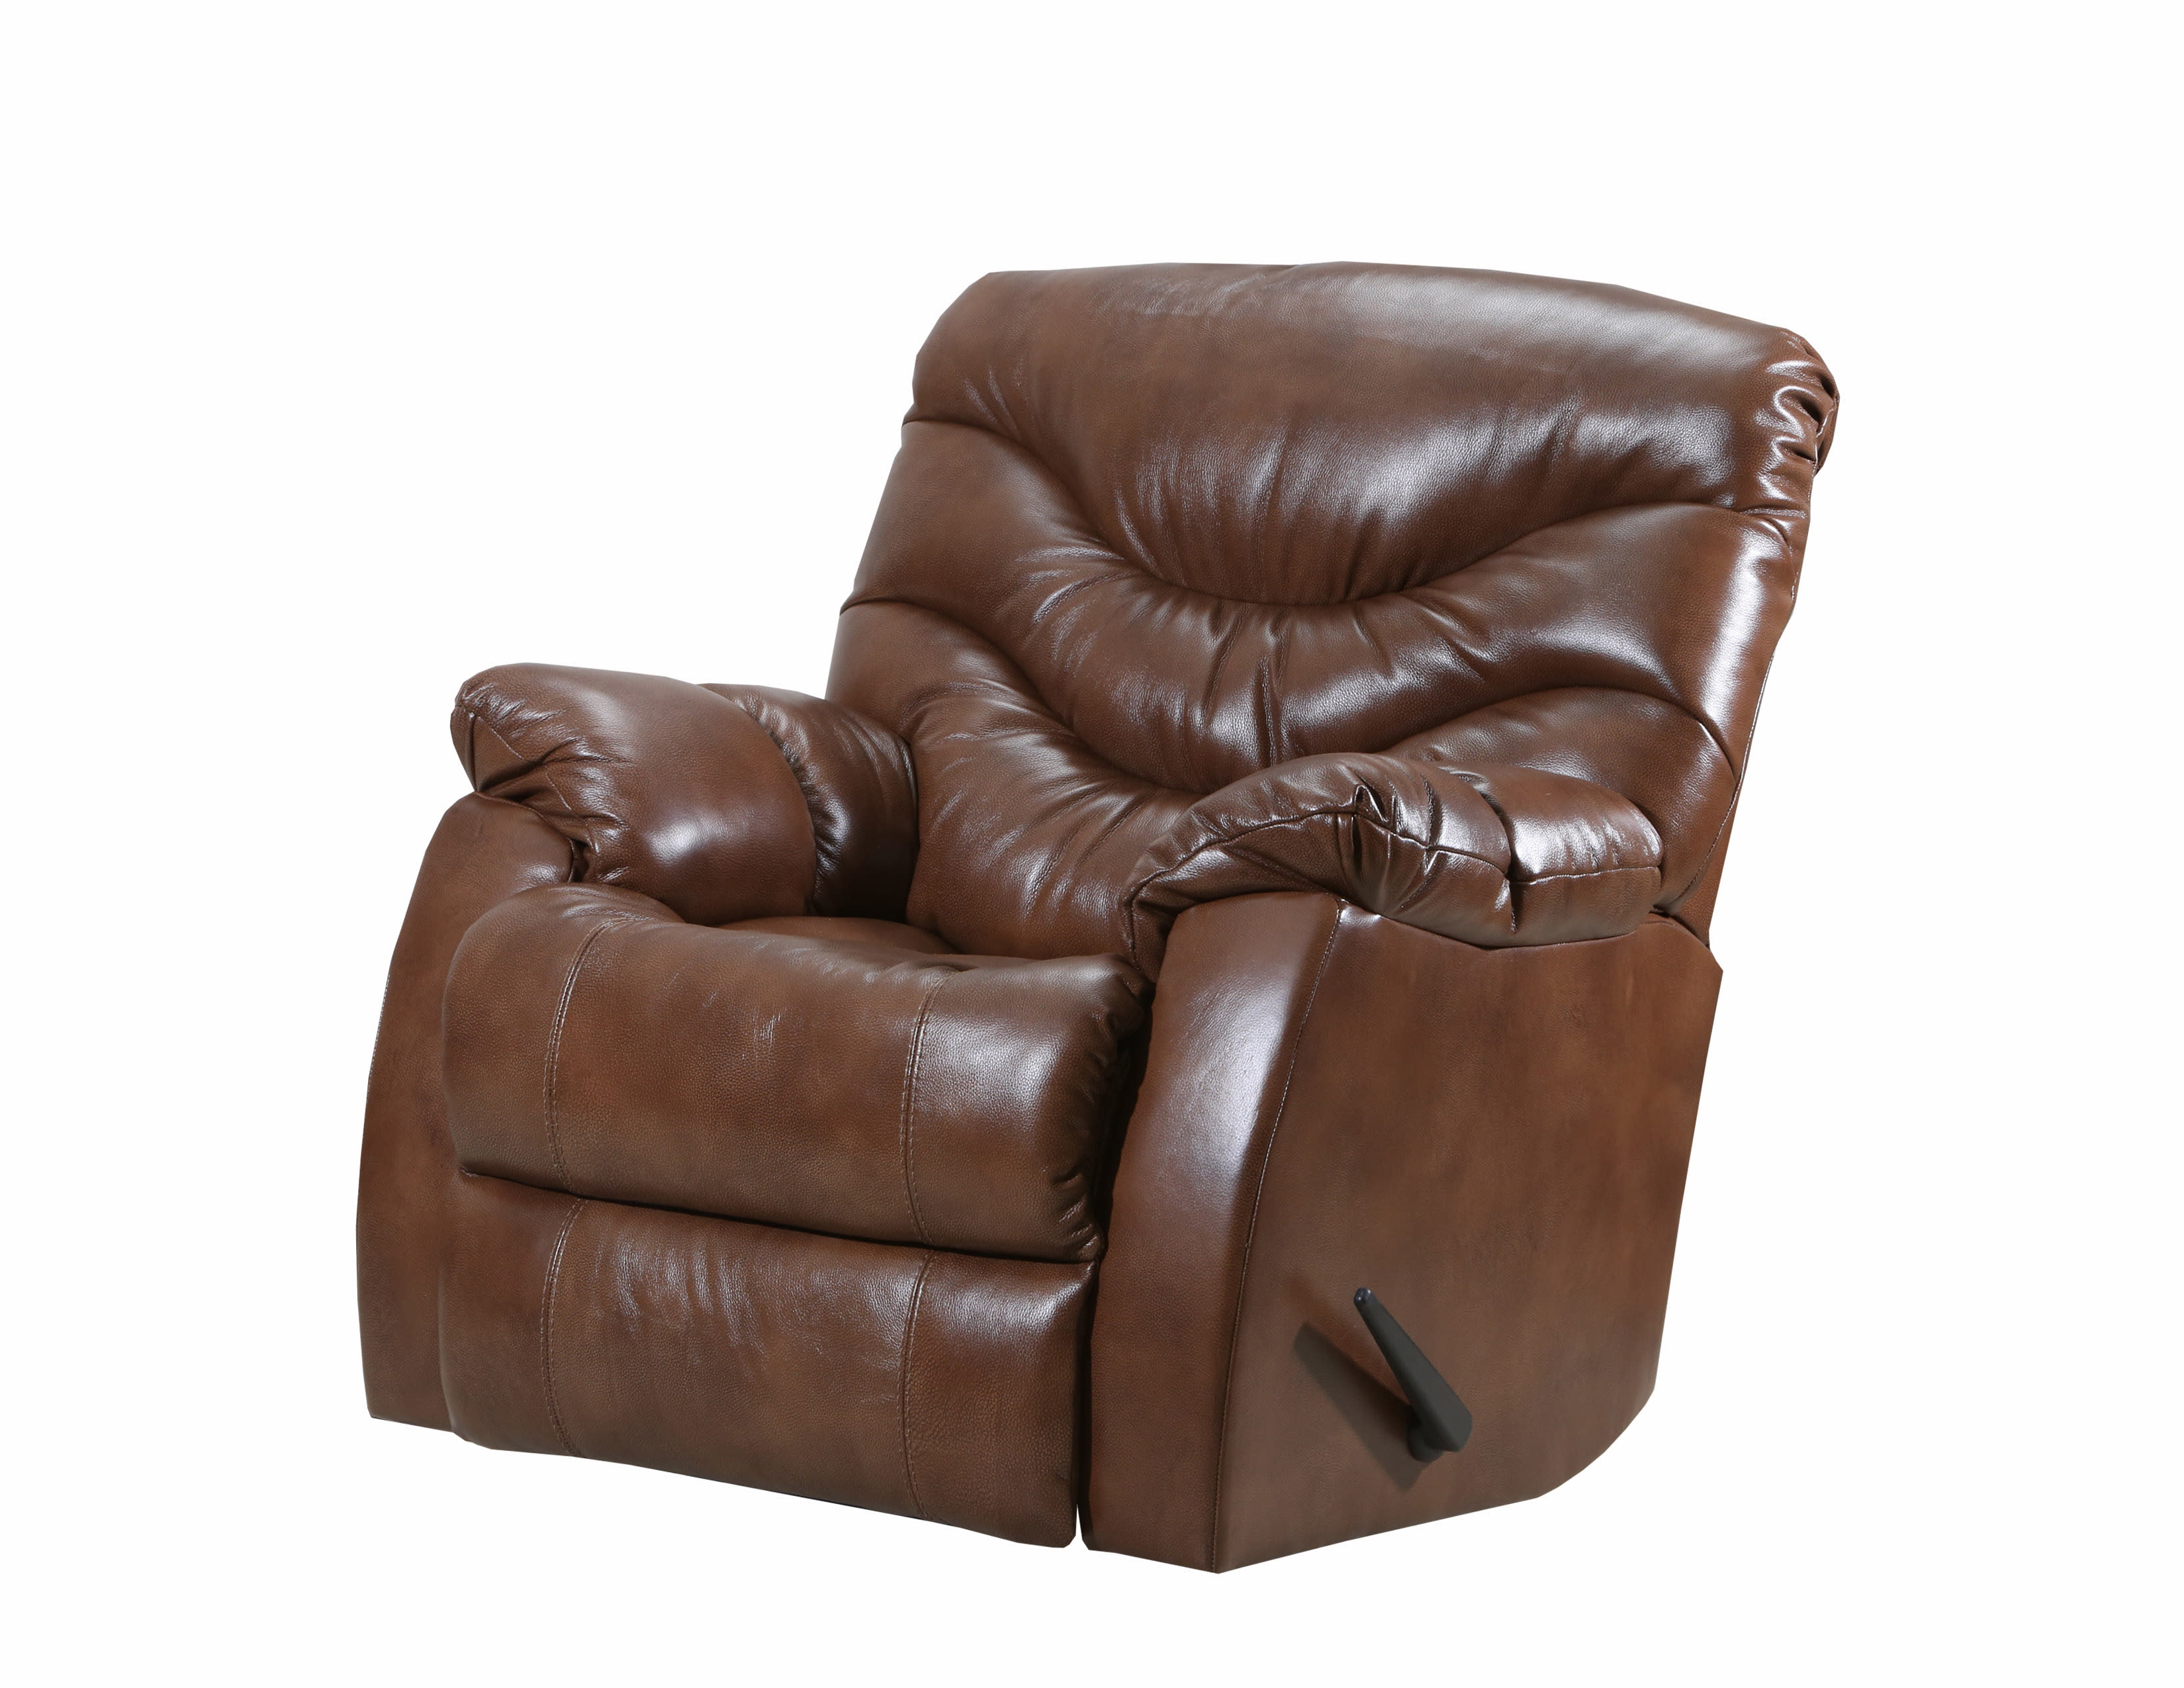 Lane Furniture Yellowstone Tobacco Swivel Rocker Recliner & Reviews For Widely Used Swivel Tobacco Leather Chairs (View 8 of 20)